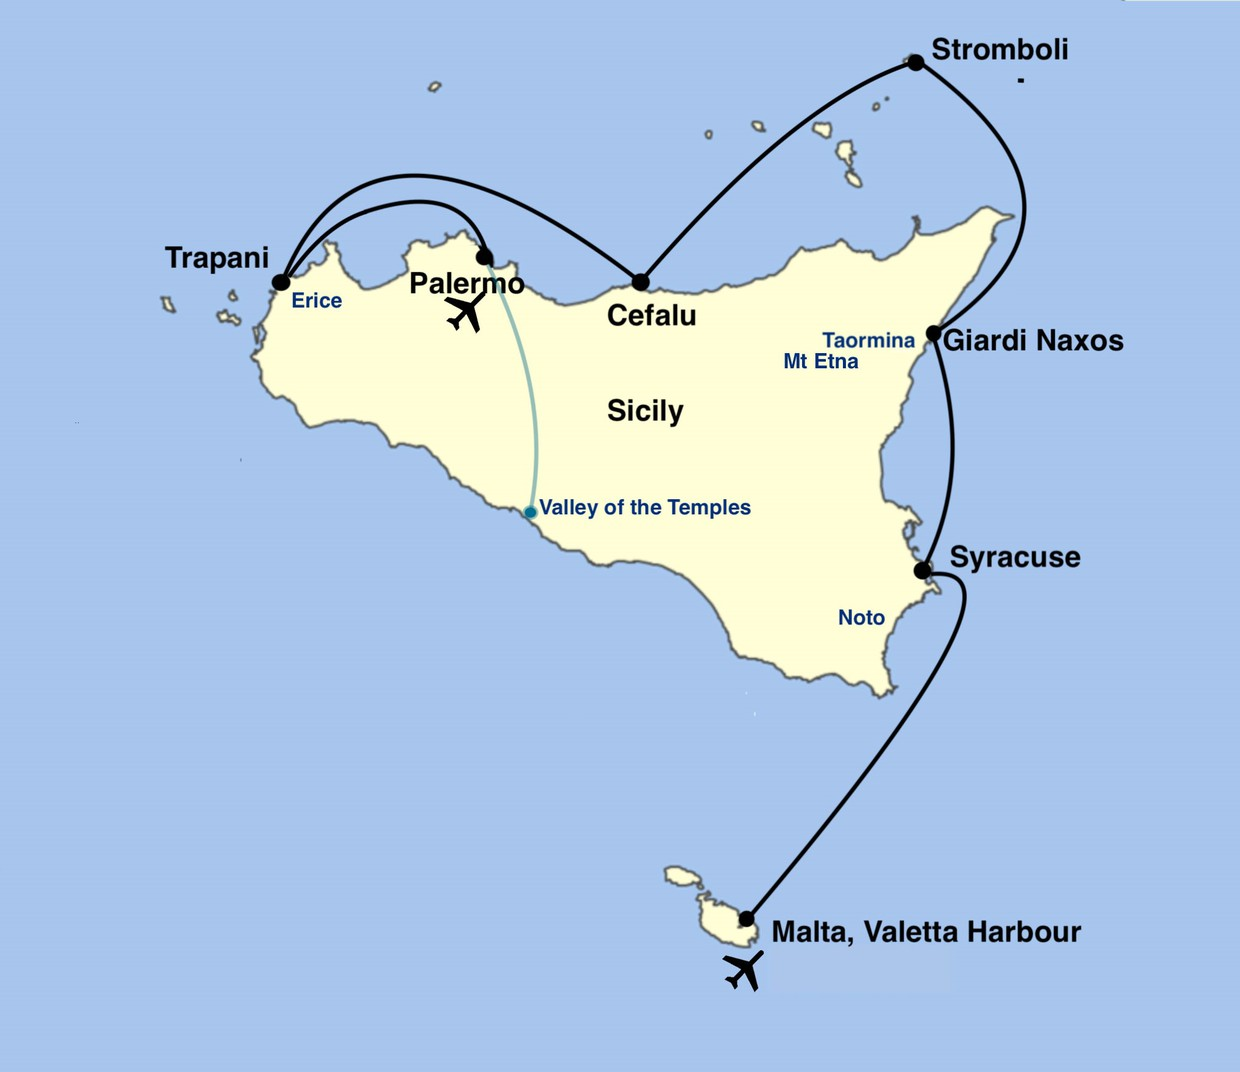 Map for Sicily Cruise - The sights and tastes of Sicily